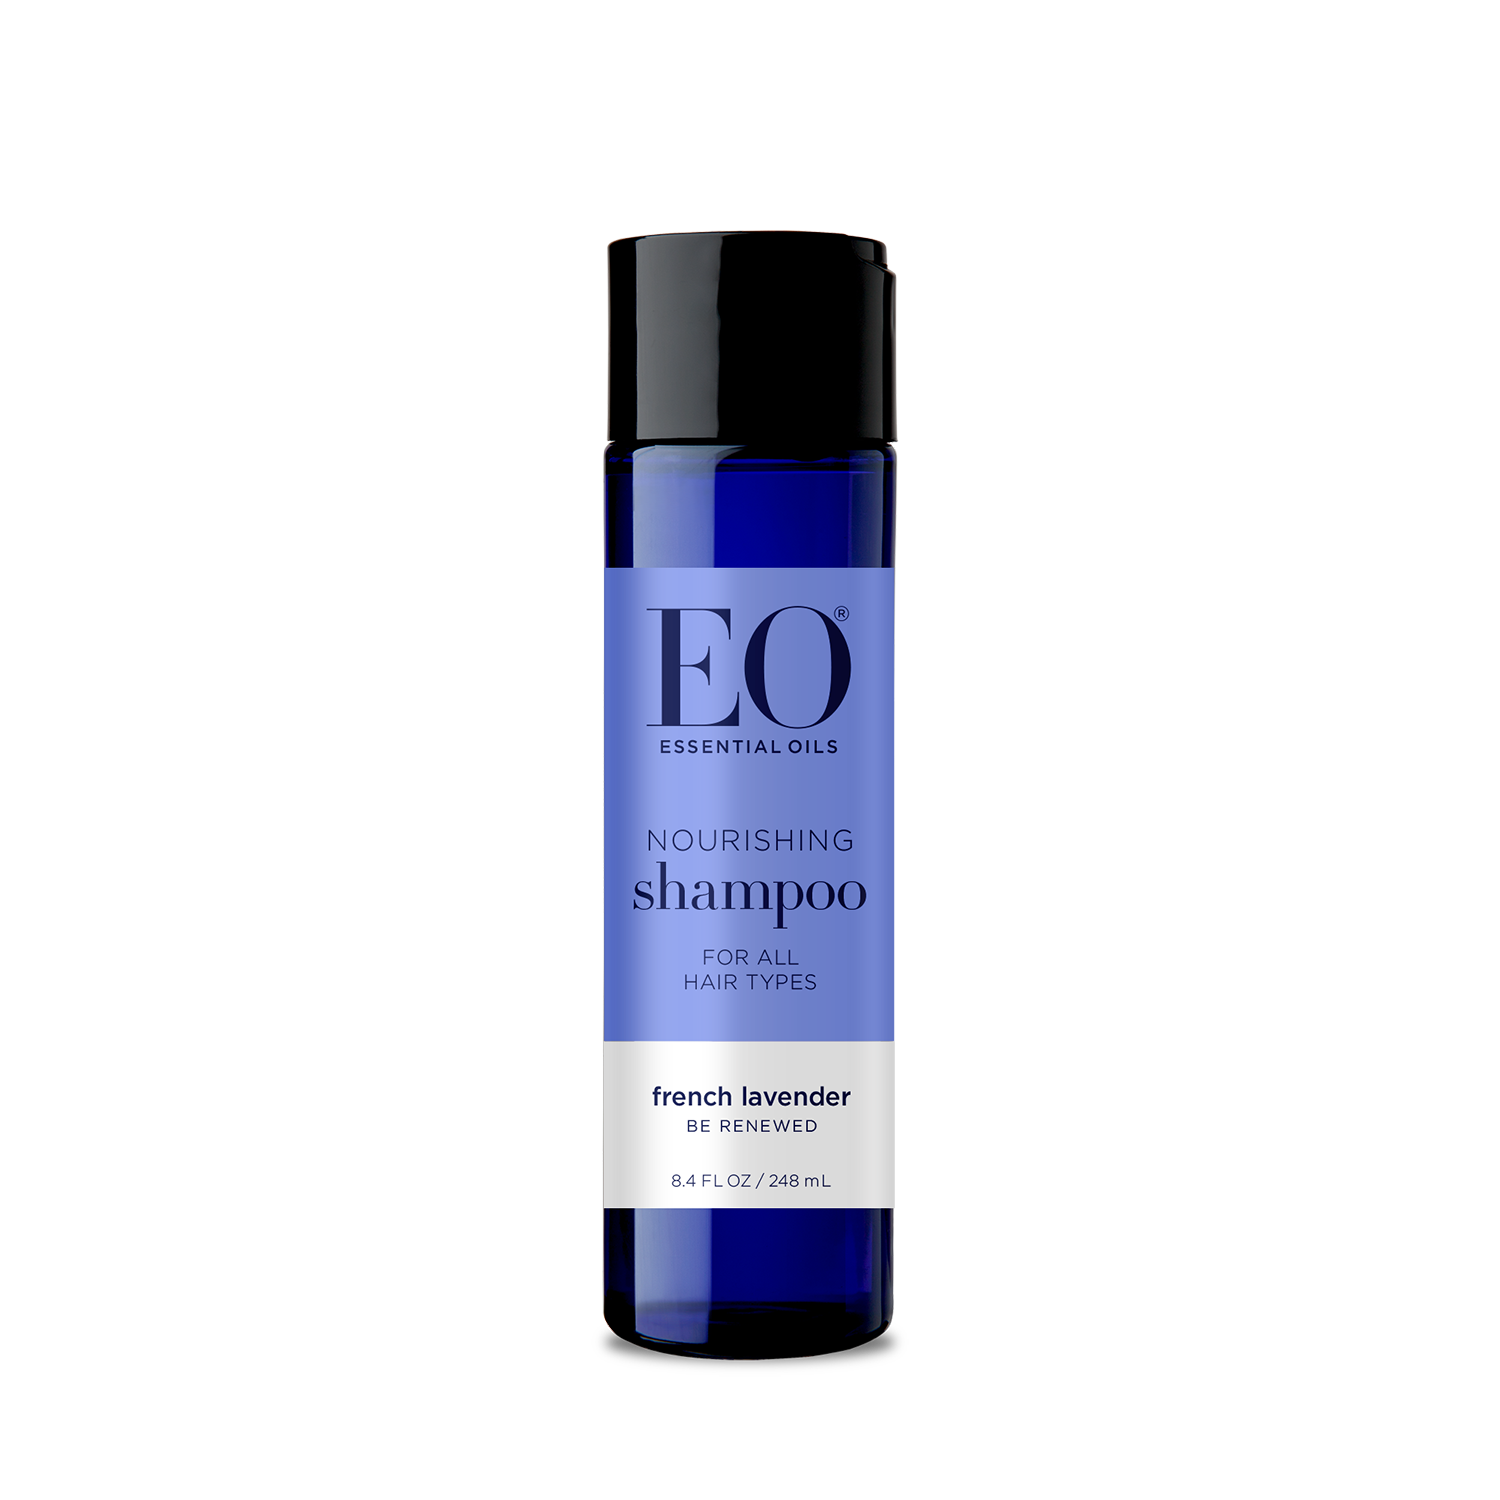 Shampoo clipart body wash bottle. French lavender eo products